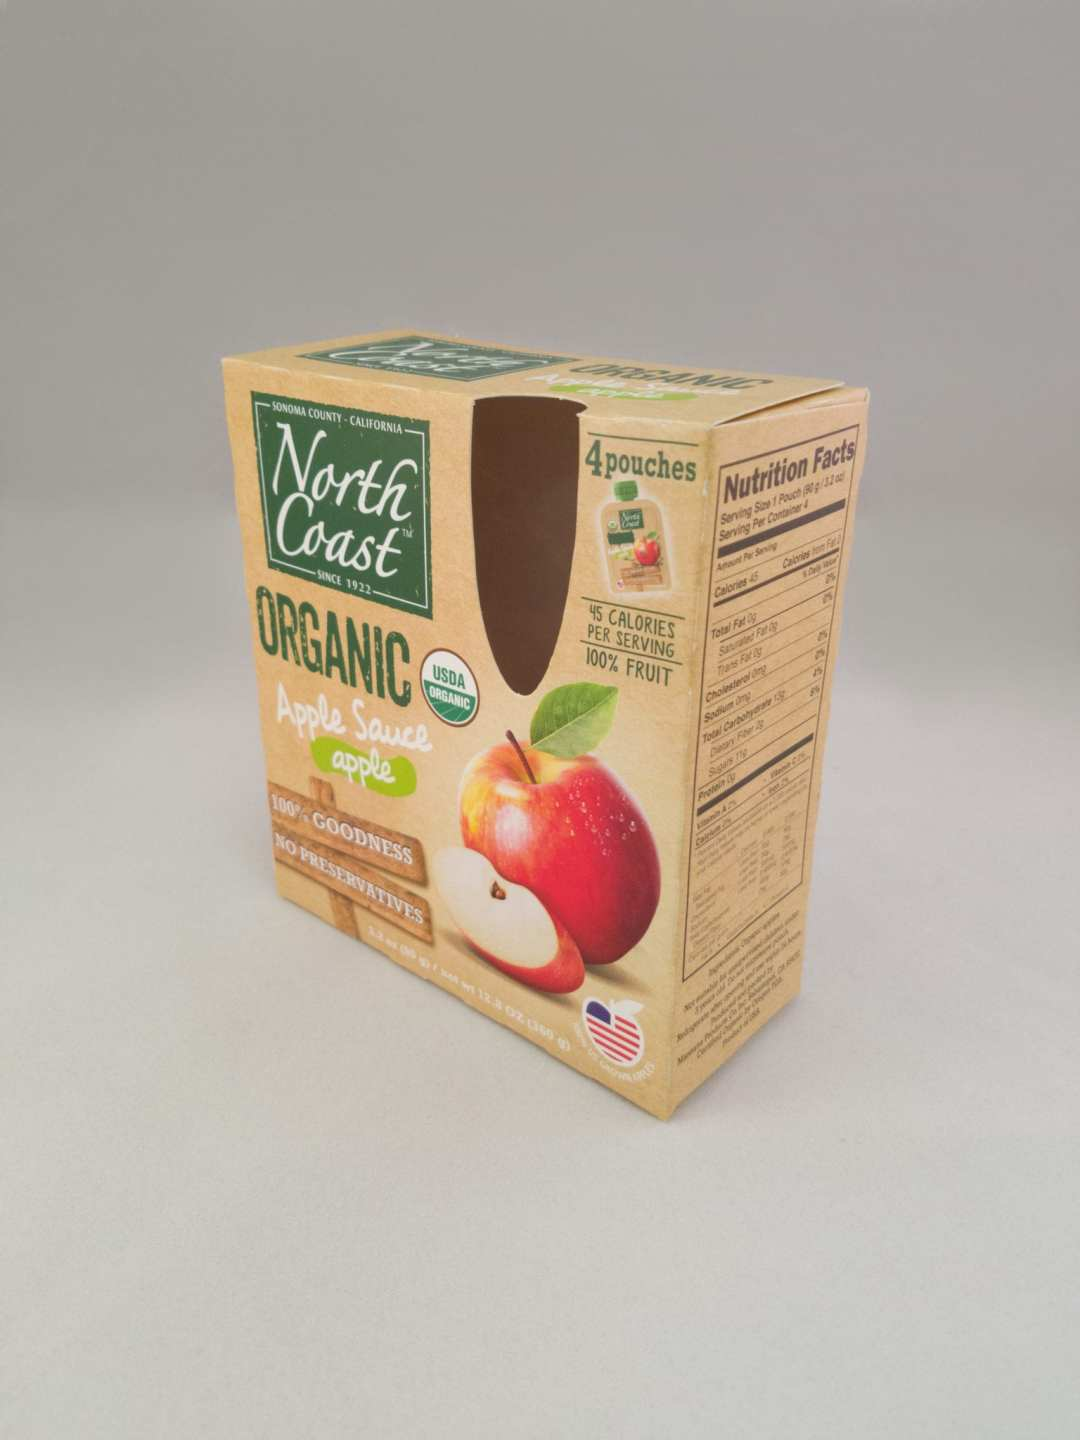 custom folding carton box for retail use and shipping